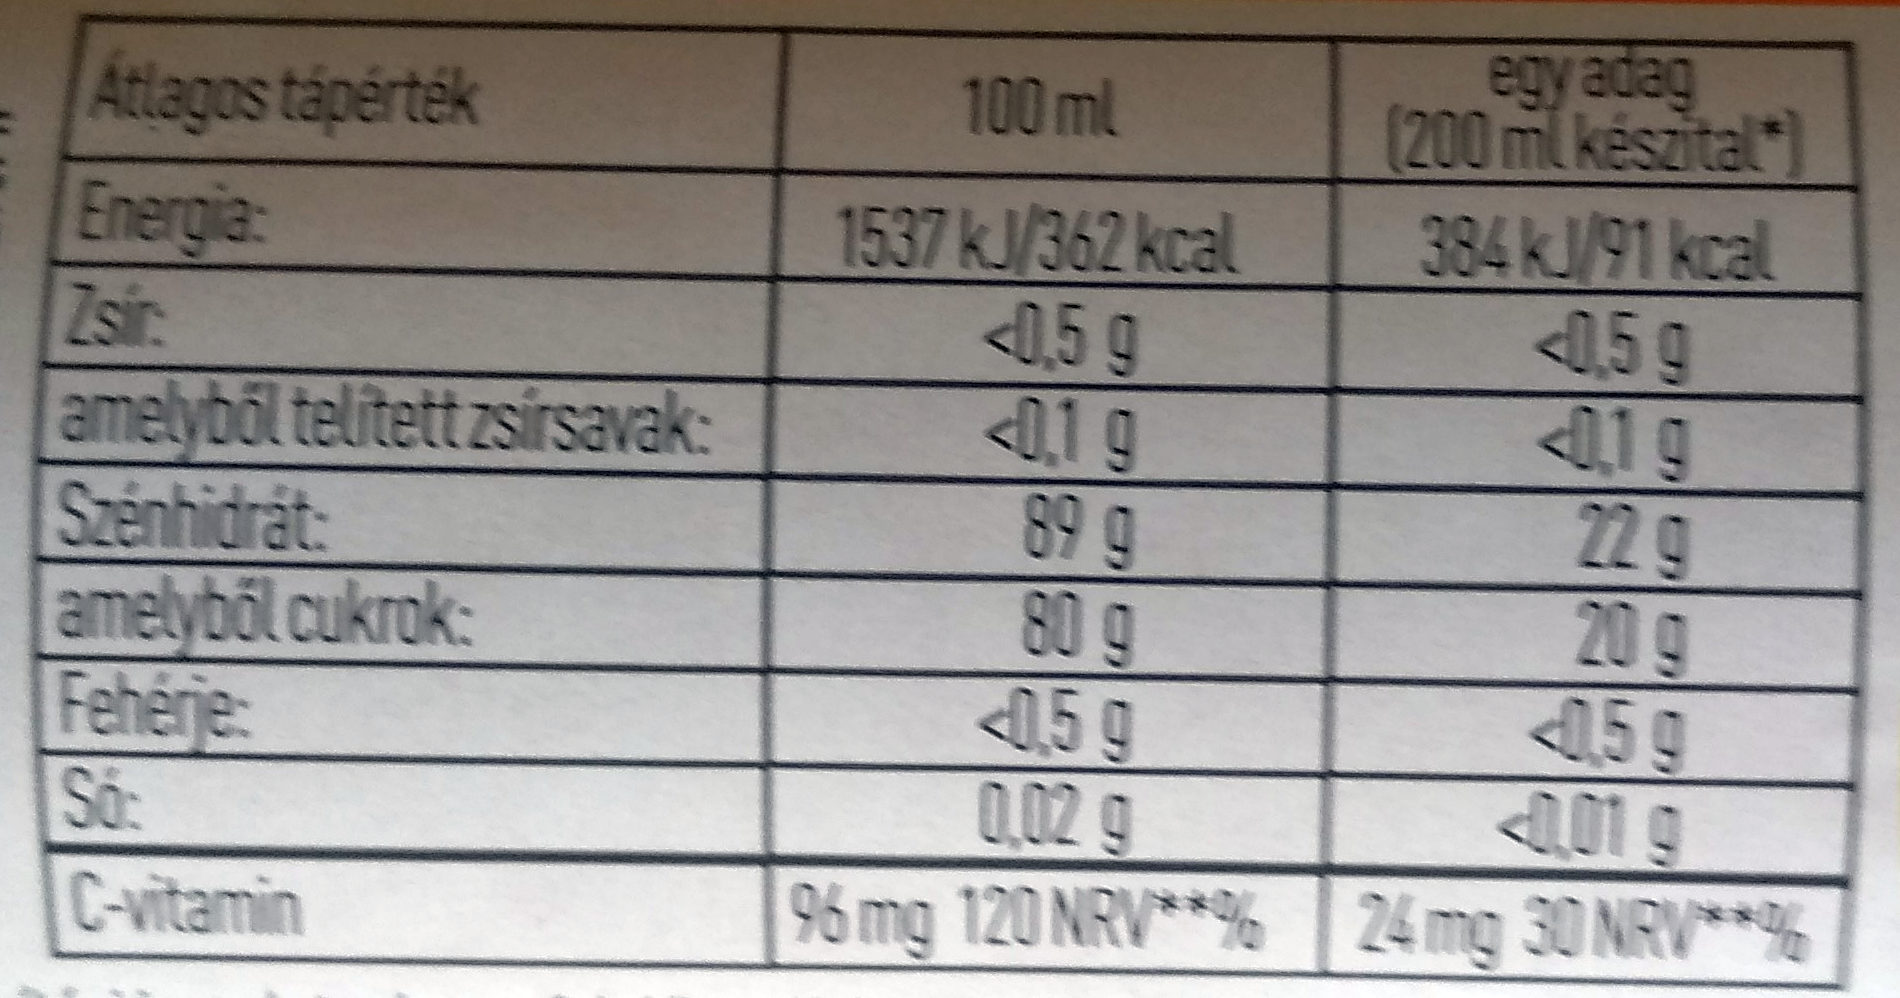 Jaffa Ági - Nutrition facts